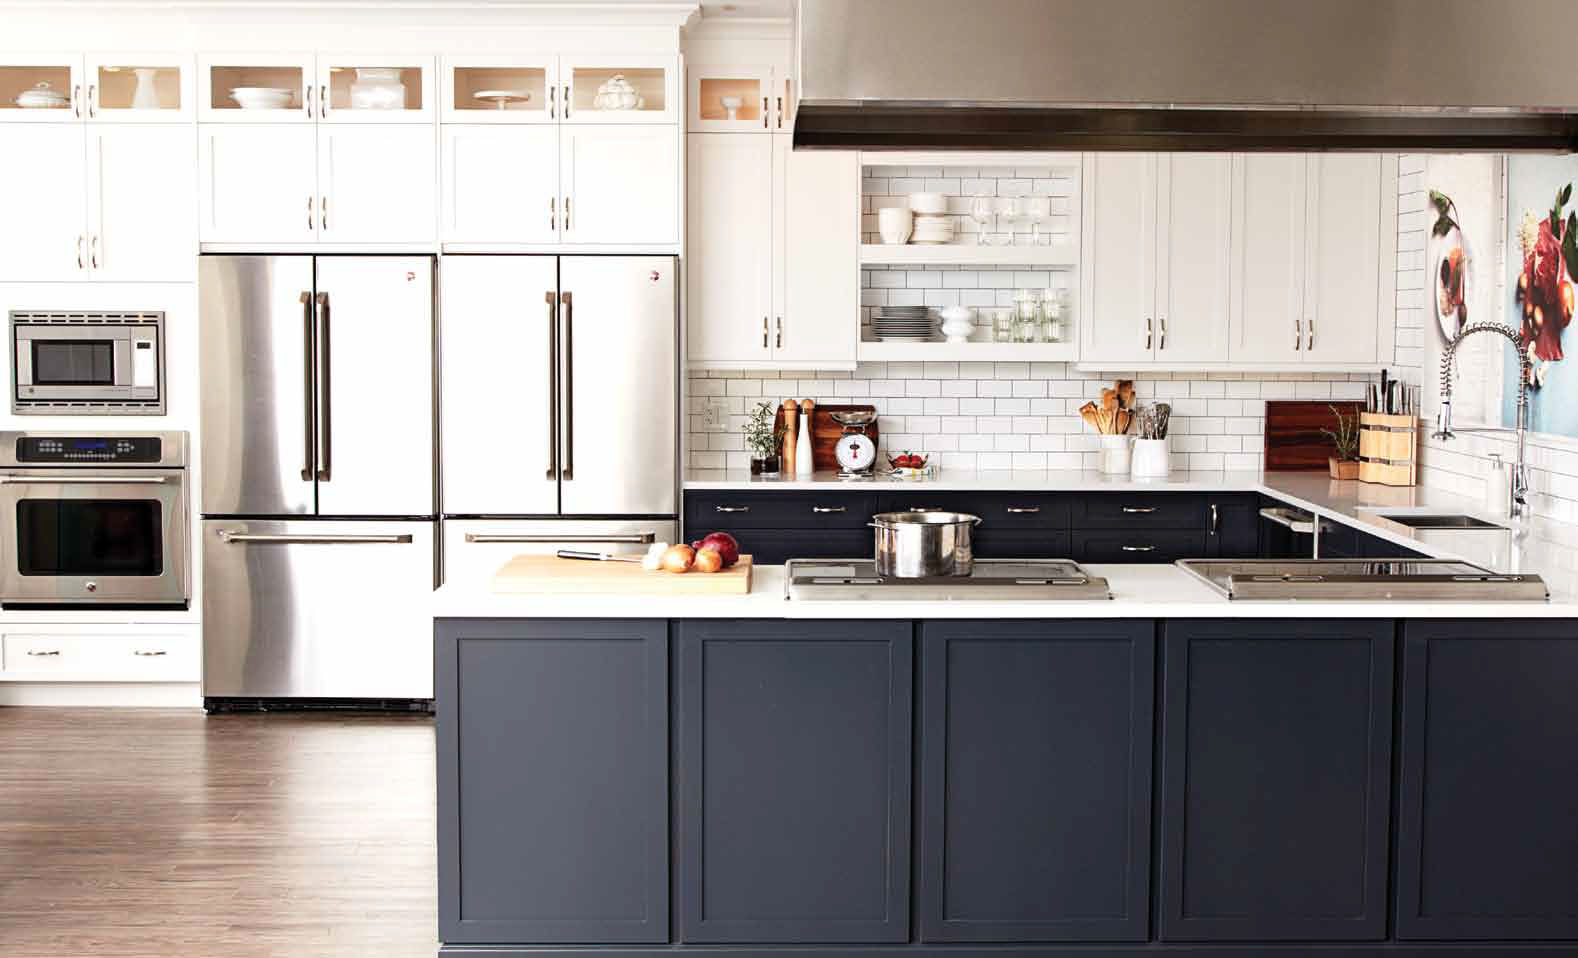 25 beautiful black and white kitchens the cottage market for Images of black kitchen cabinets